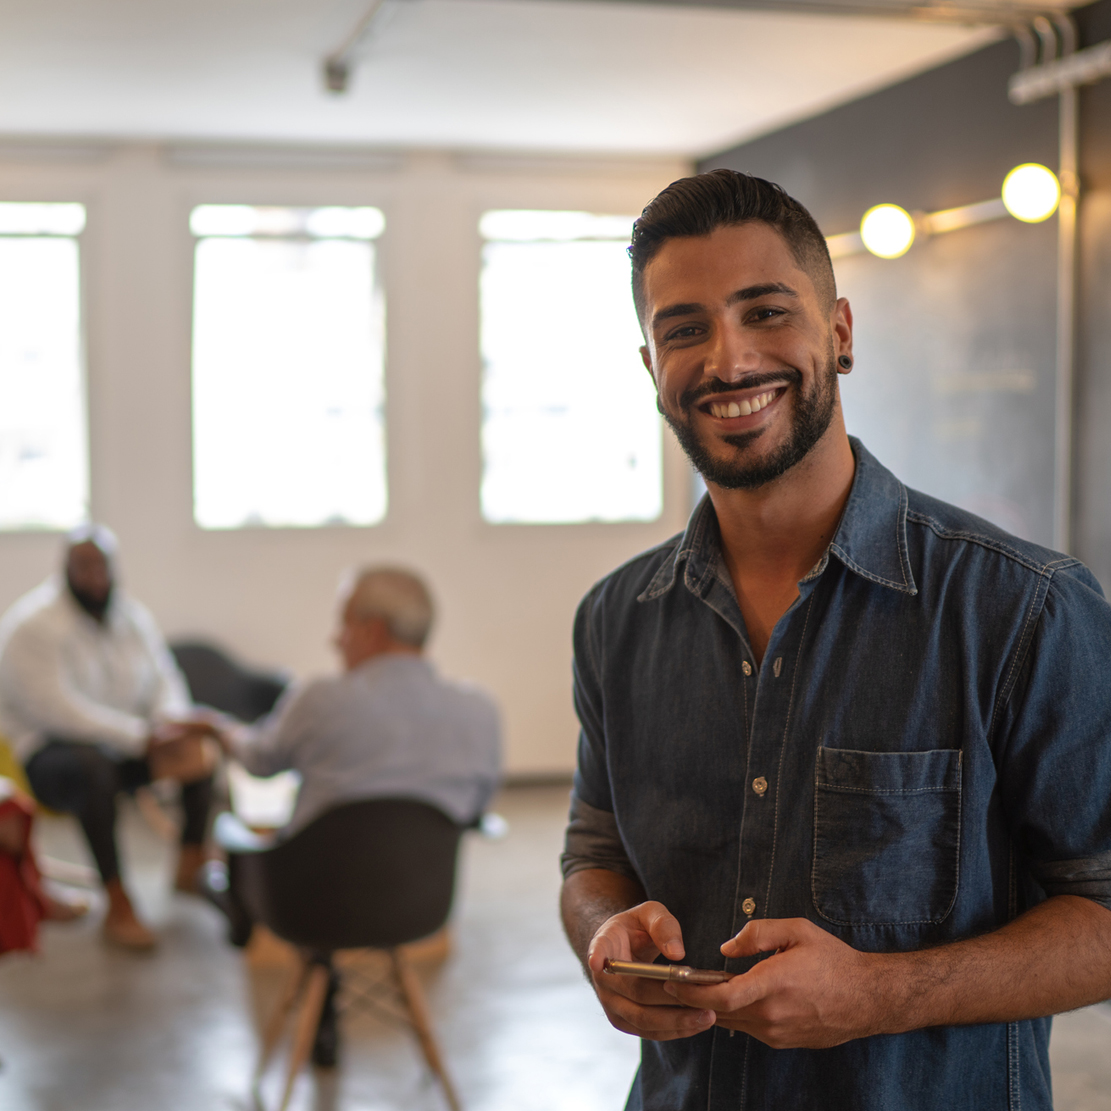 Teach employees about cybersecurity_How Small Business Owners Can Teach Their Employees About Cybersecurity_Young Man holding cell phone with coworkers in background